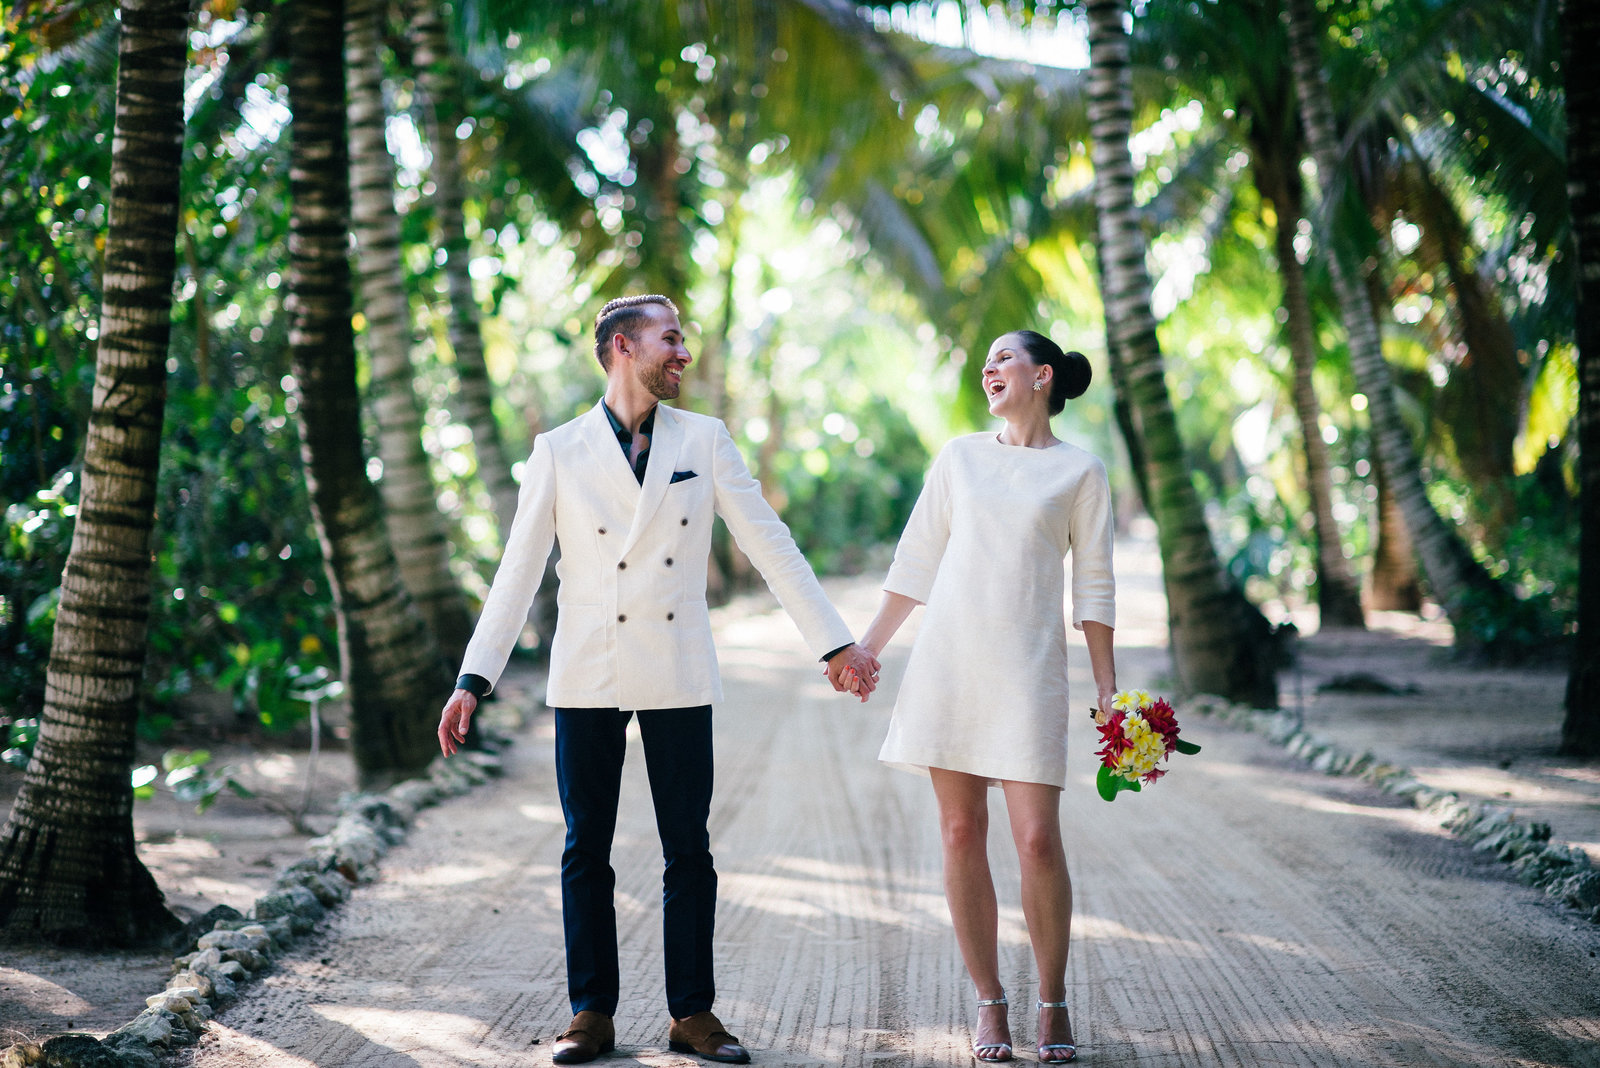 laughing bride & Groom in Coconut grove in Kamalame cay by Lyndah Wells Photography